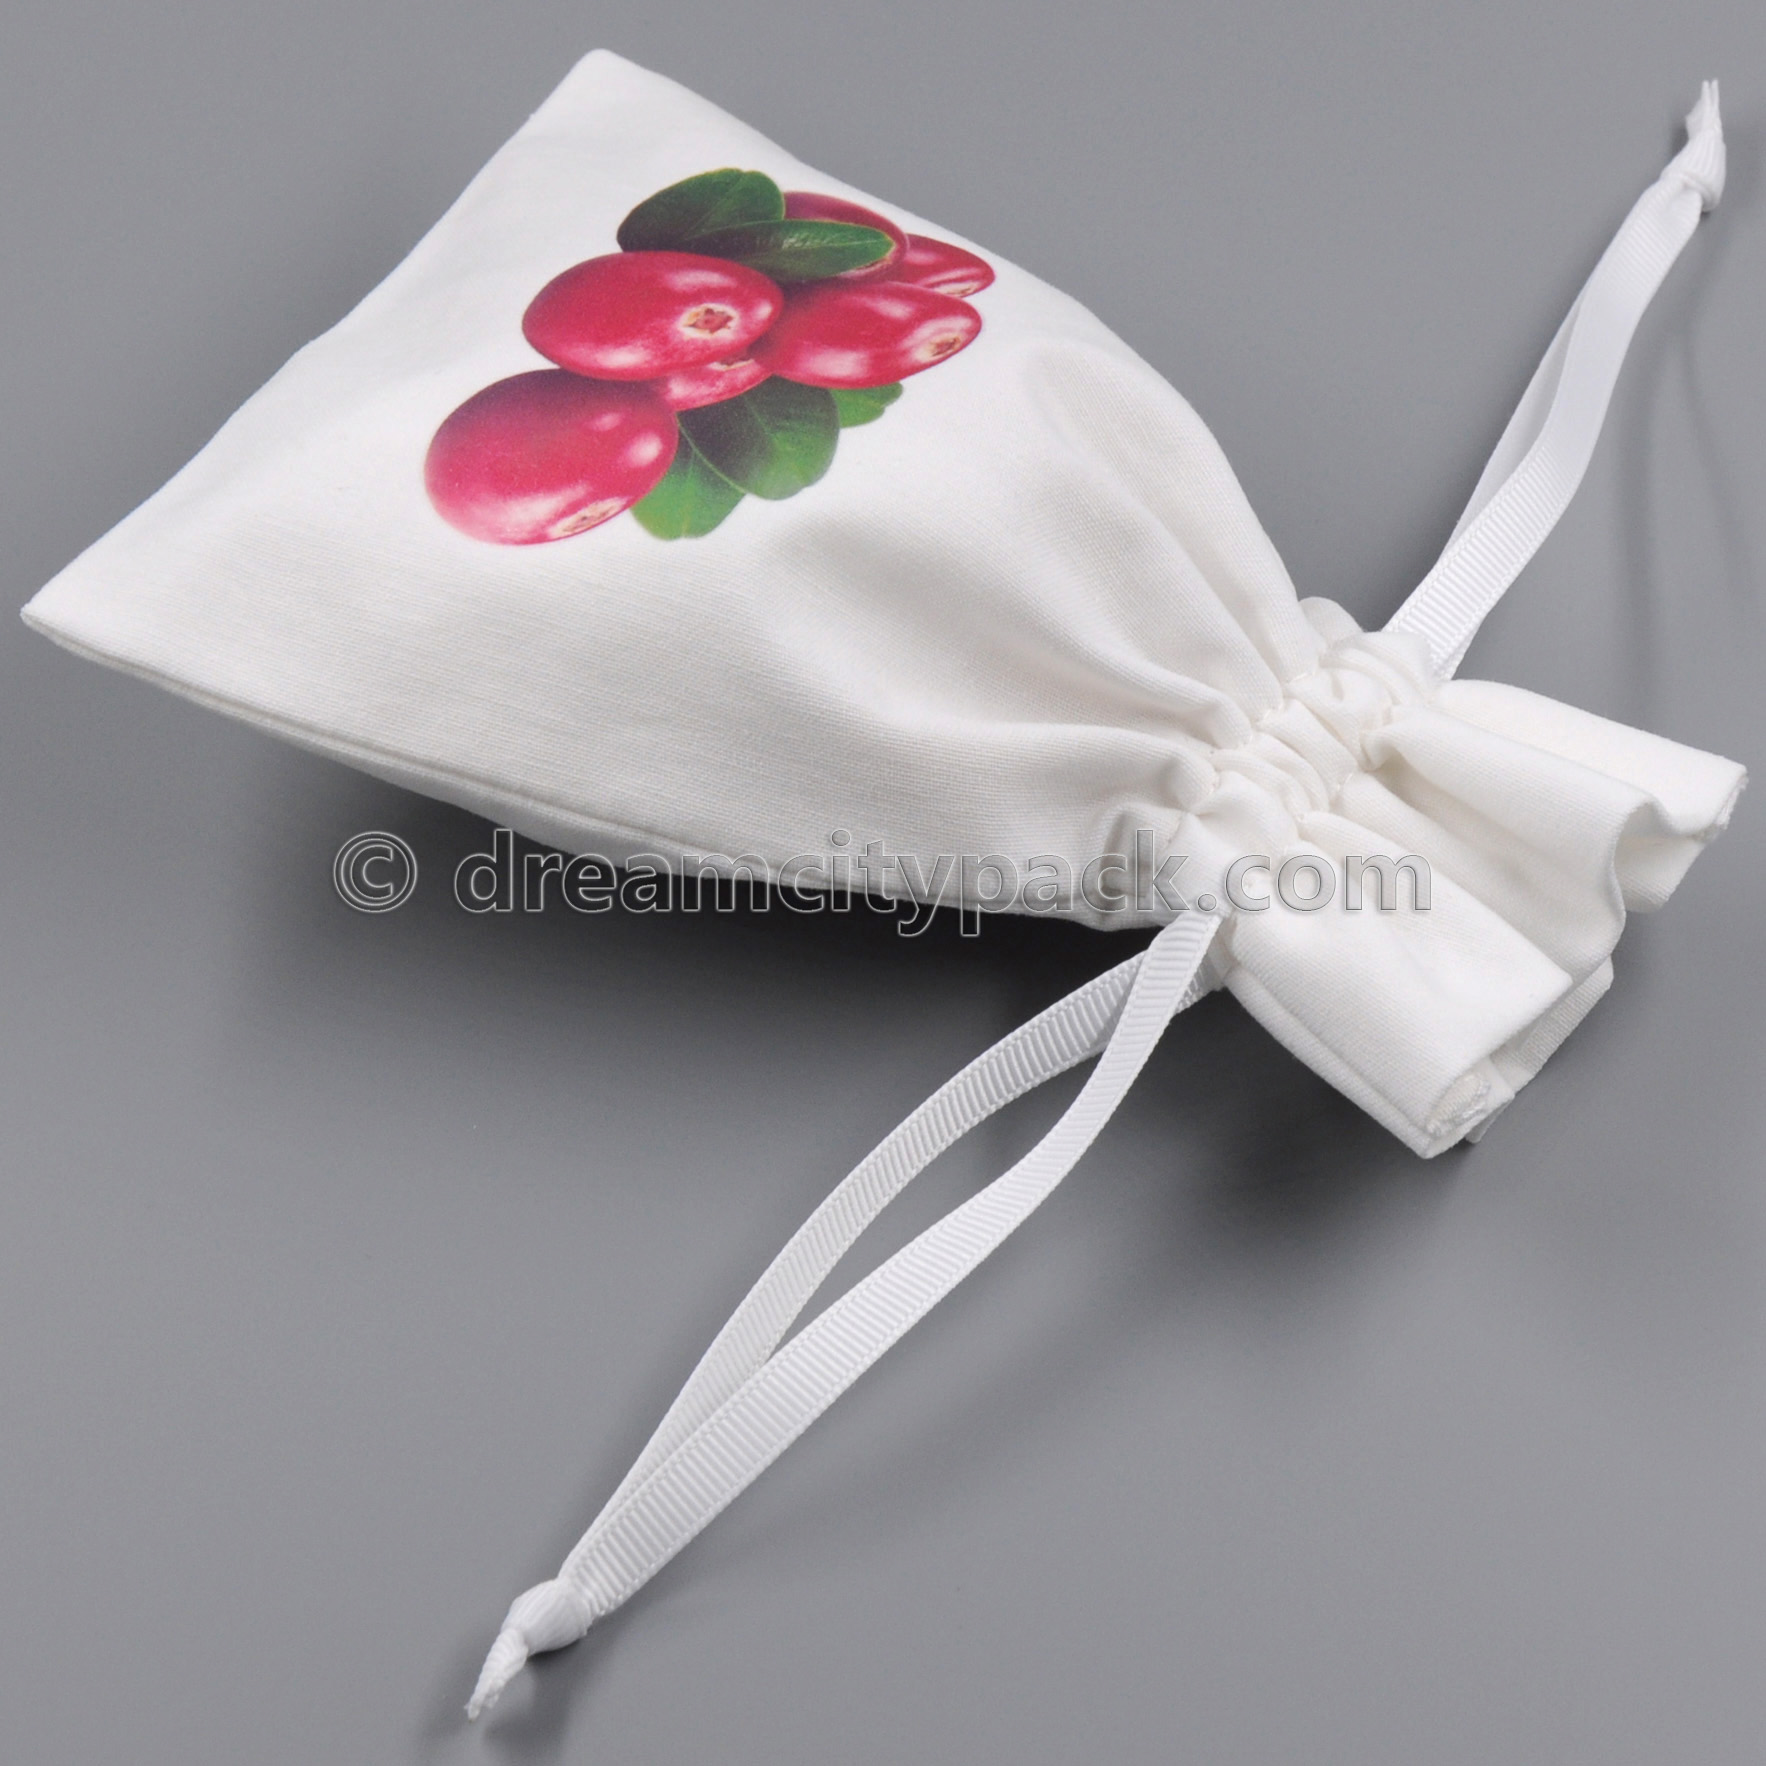 Eco-friendly Organic Cotton Muslin Drawstring Bags with Personalized Multicolored Logo